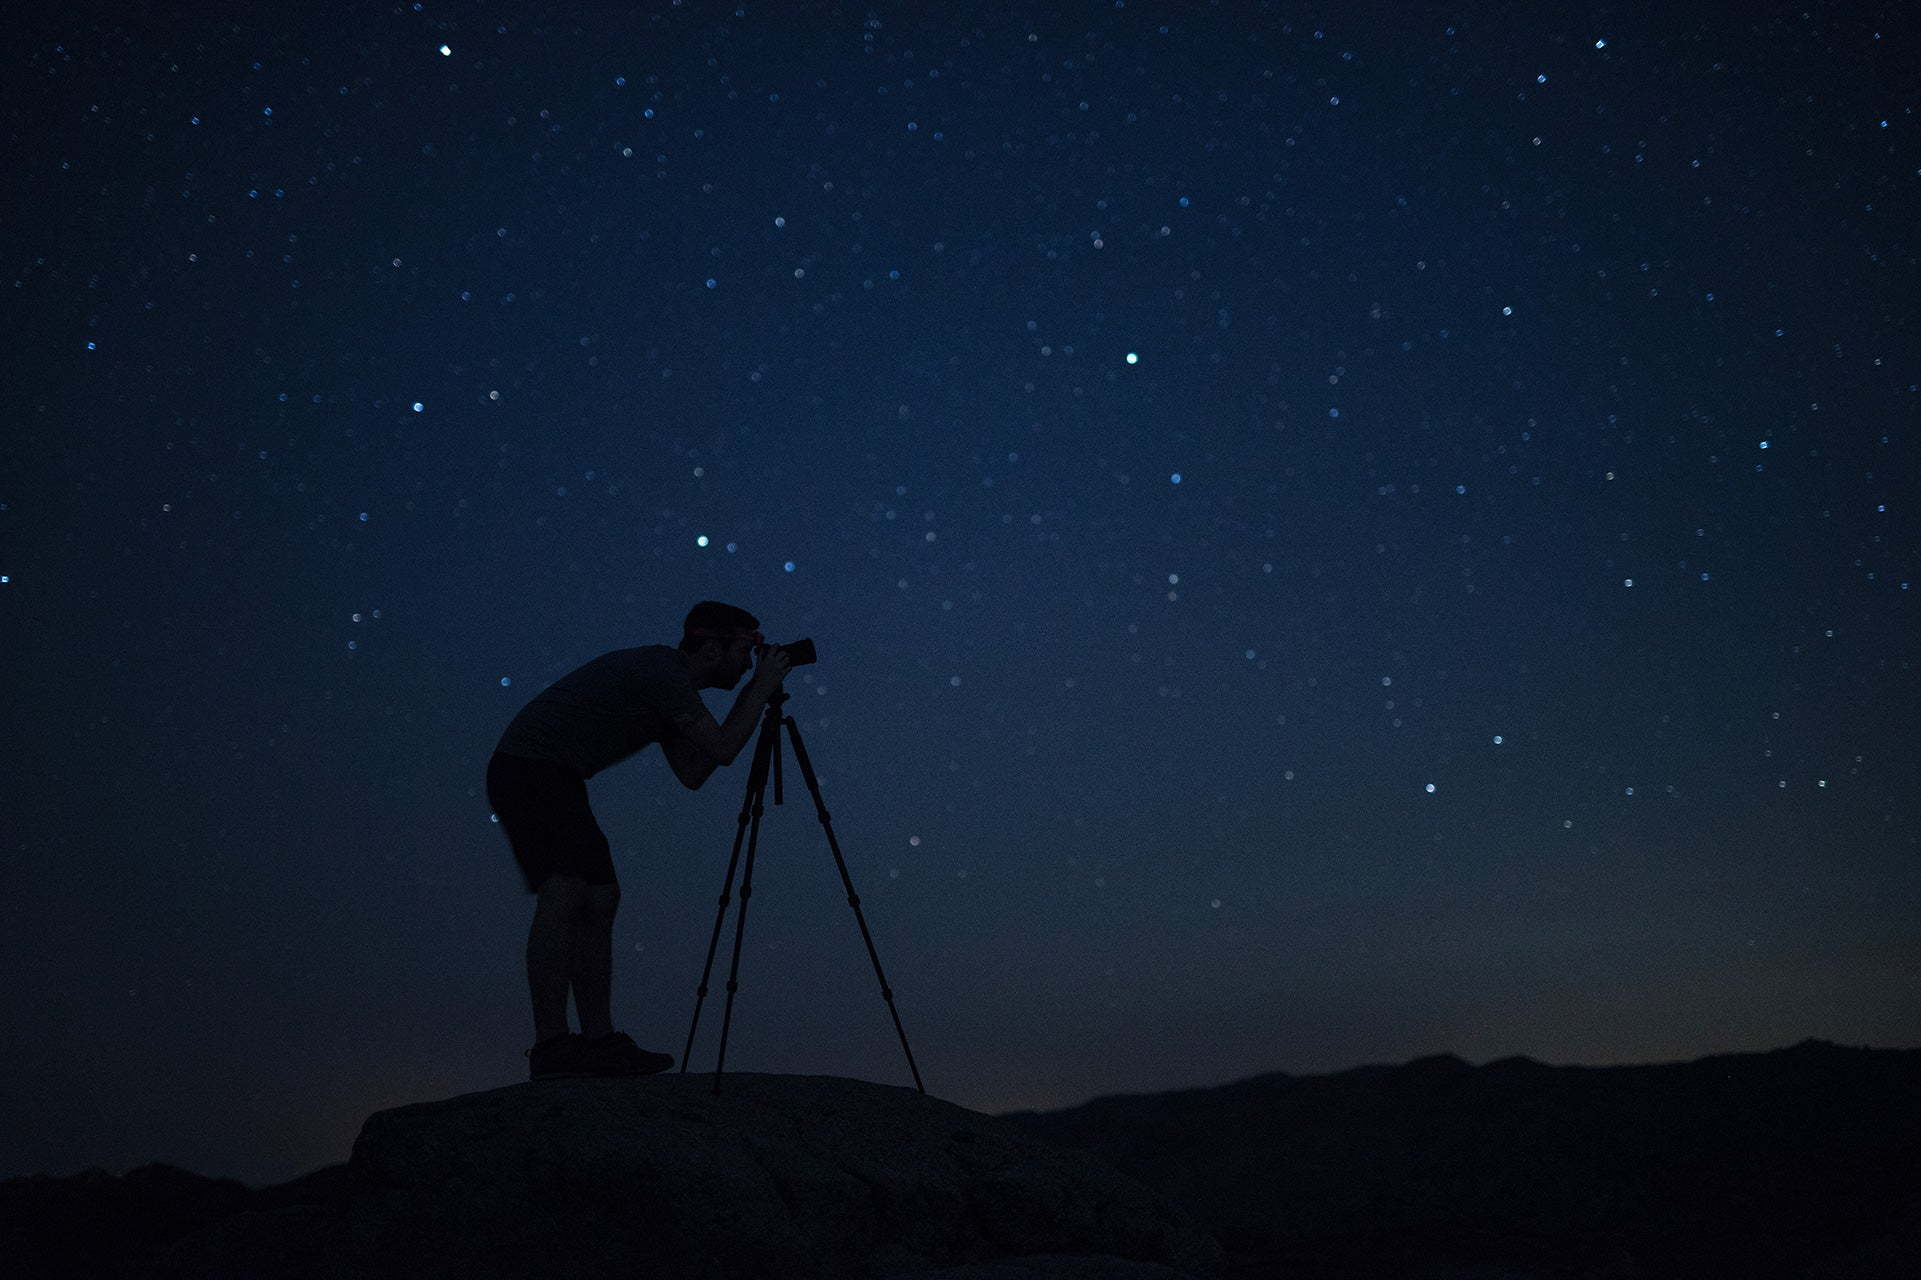 Learn Astrophotography - Private 1 on 1 Online Workshop